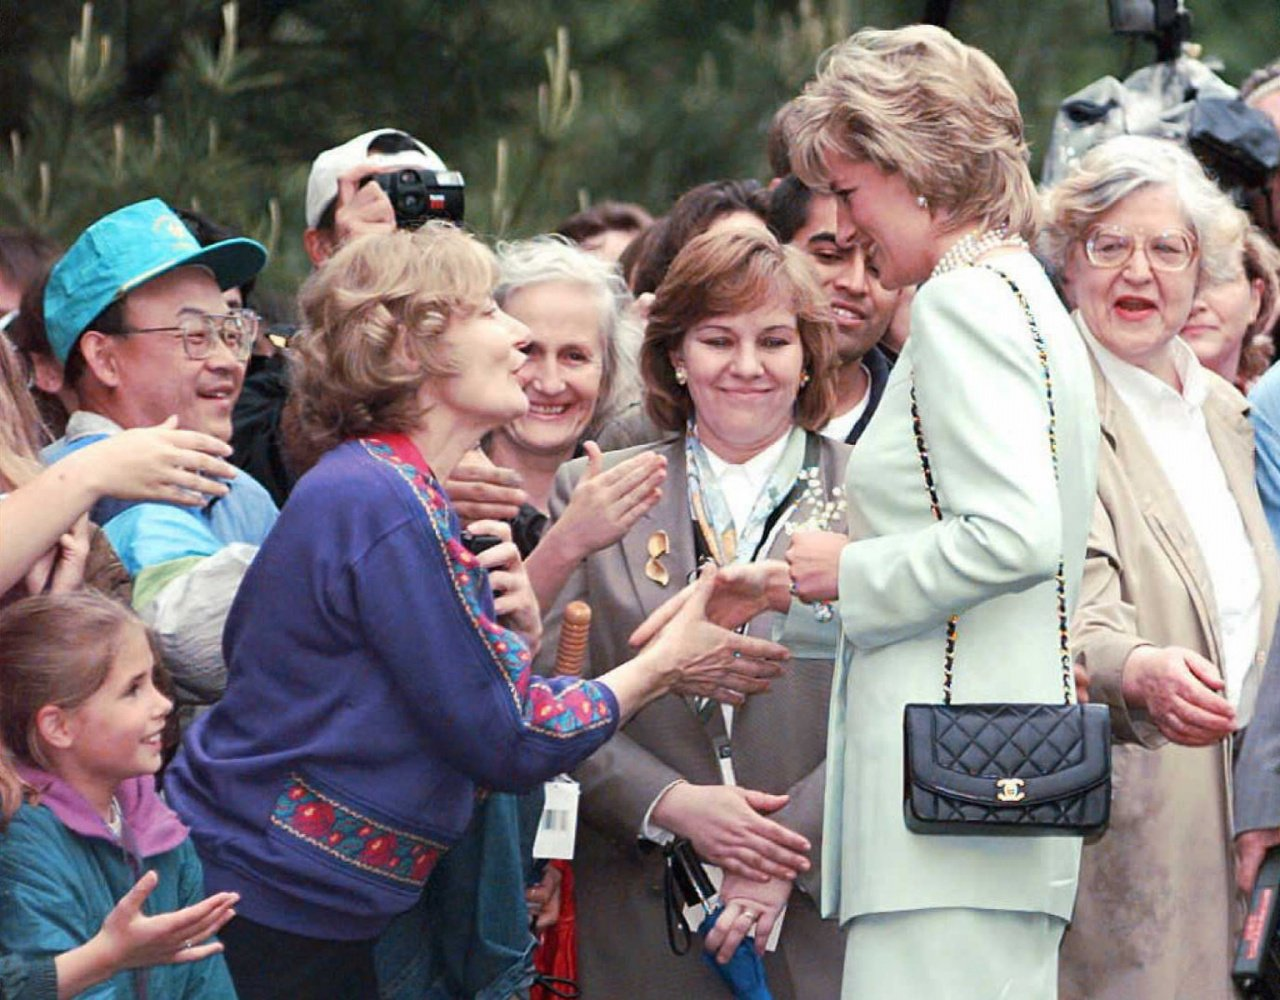 Princess Diana & Her Classic Vintage Chanel Flap Bag